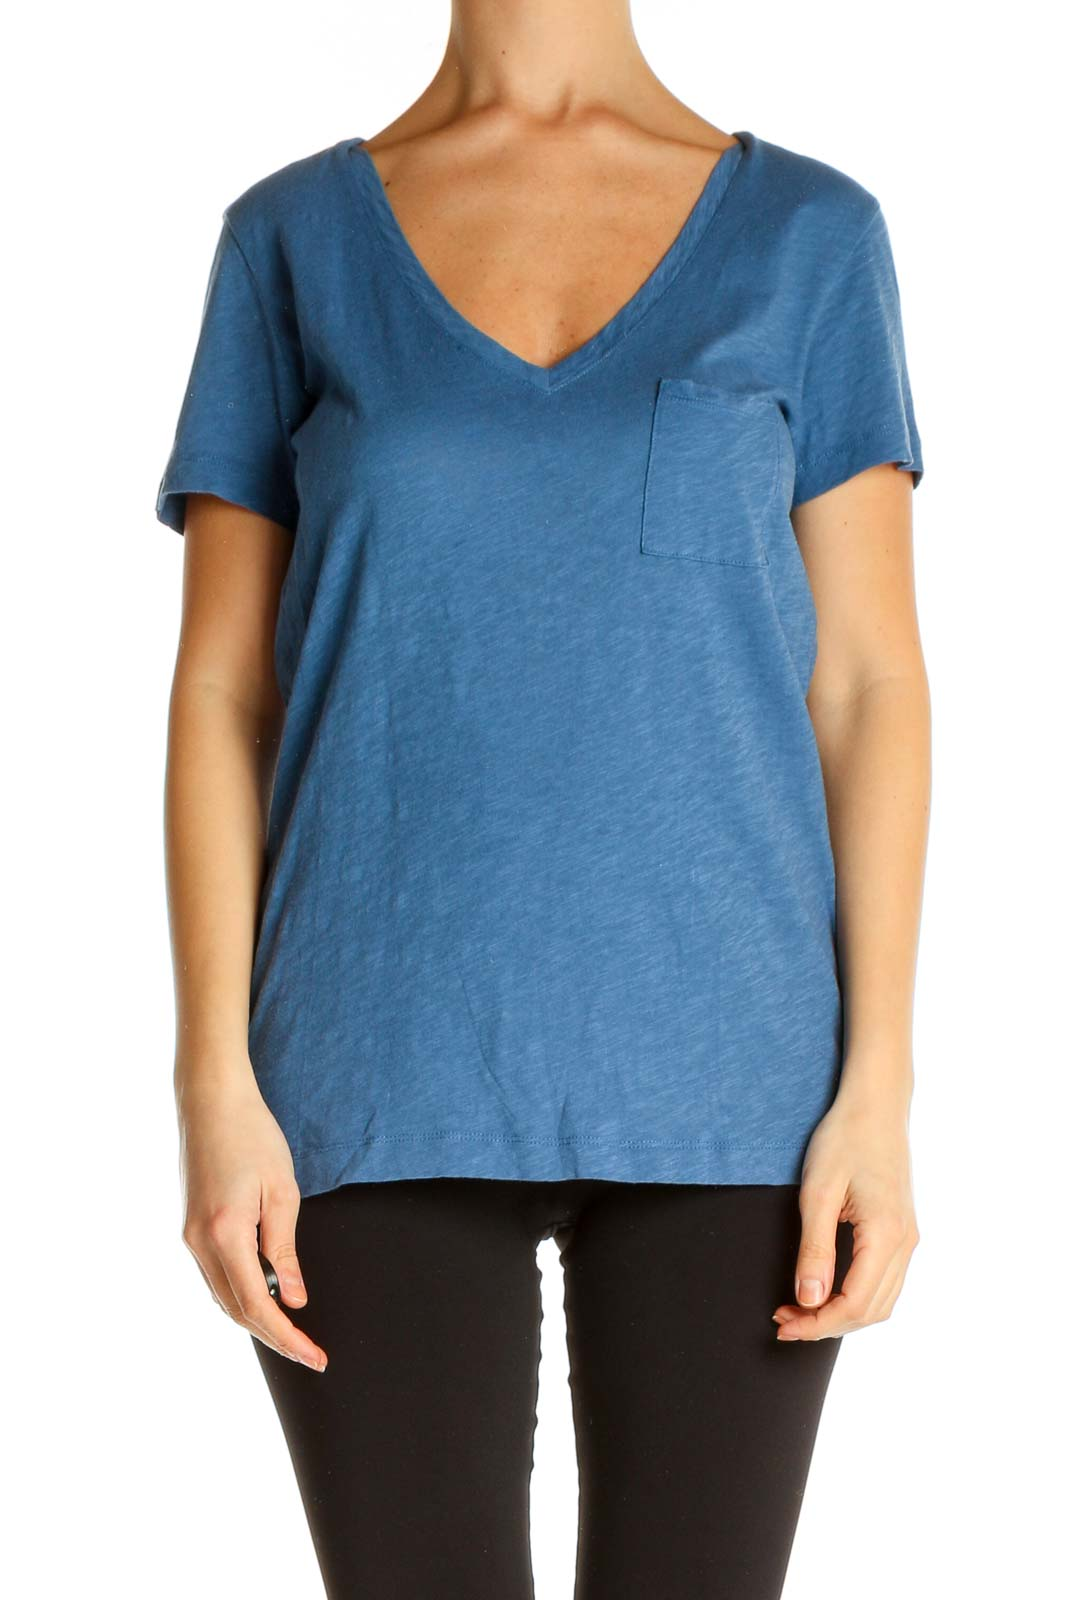 Blue Solid All Day Wear T-Shirt Front